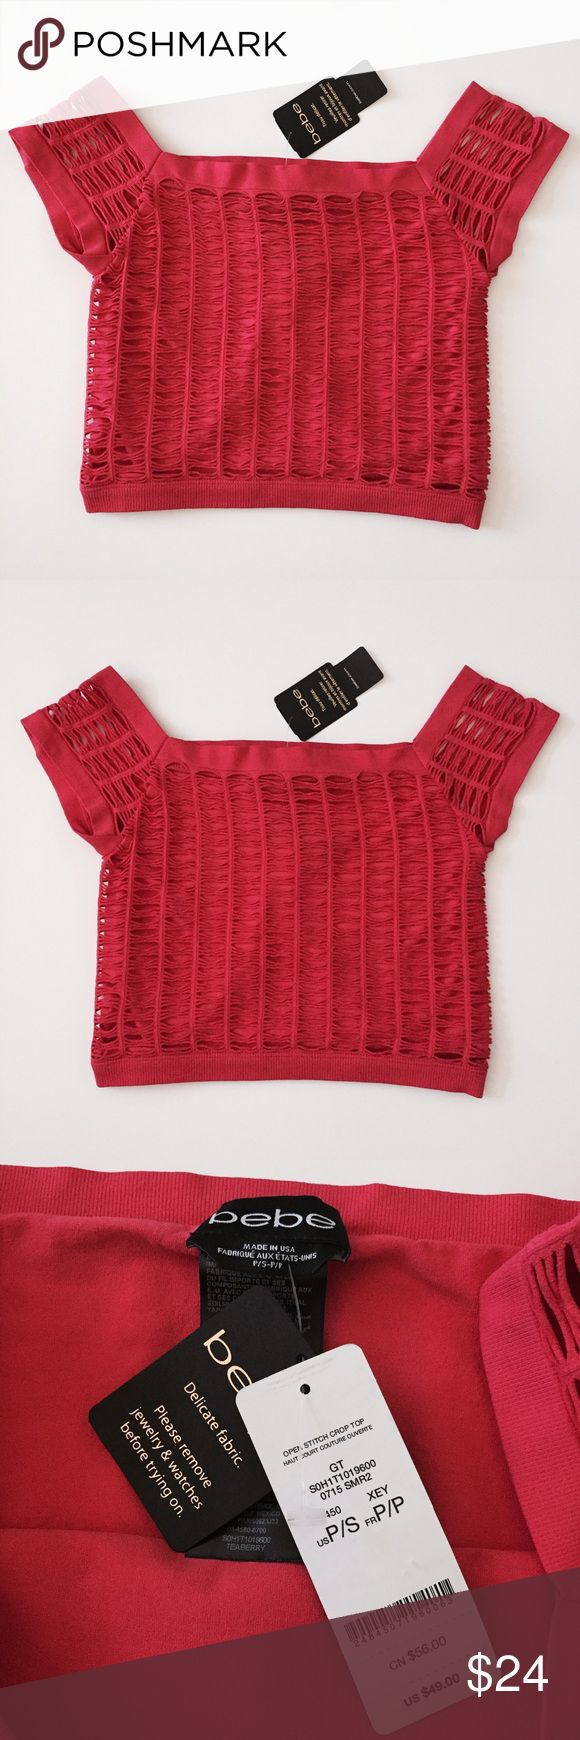 Bebe cut out crop top red small Brand new with tags, bebe strawberry red cut out crop top size small, also fits size XS. Stretchy and comfortable material. Original price $49! (Listed for less on Ⓜ️) bebe Tops Crop Tops